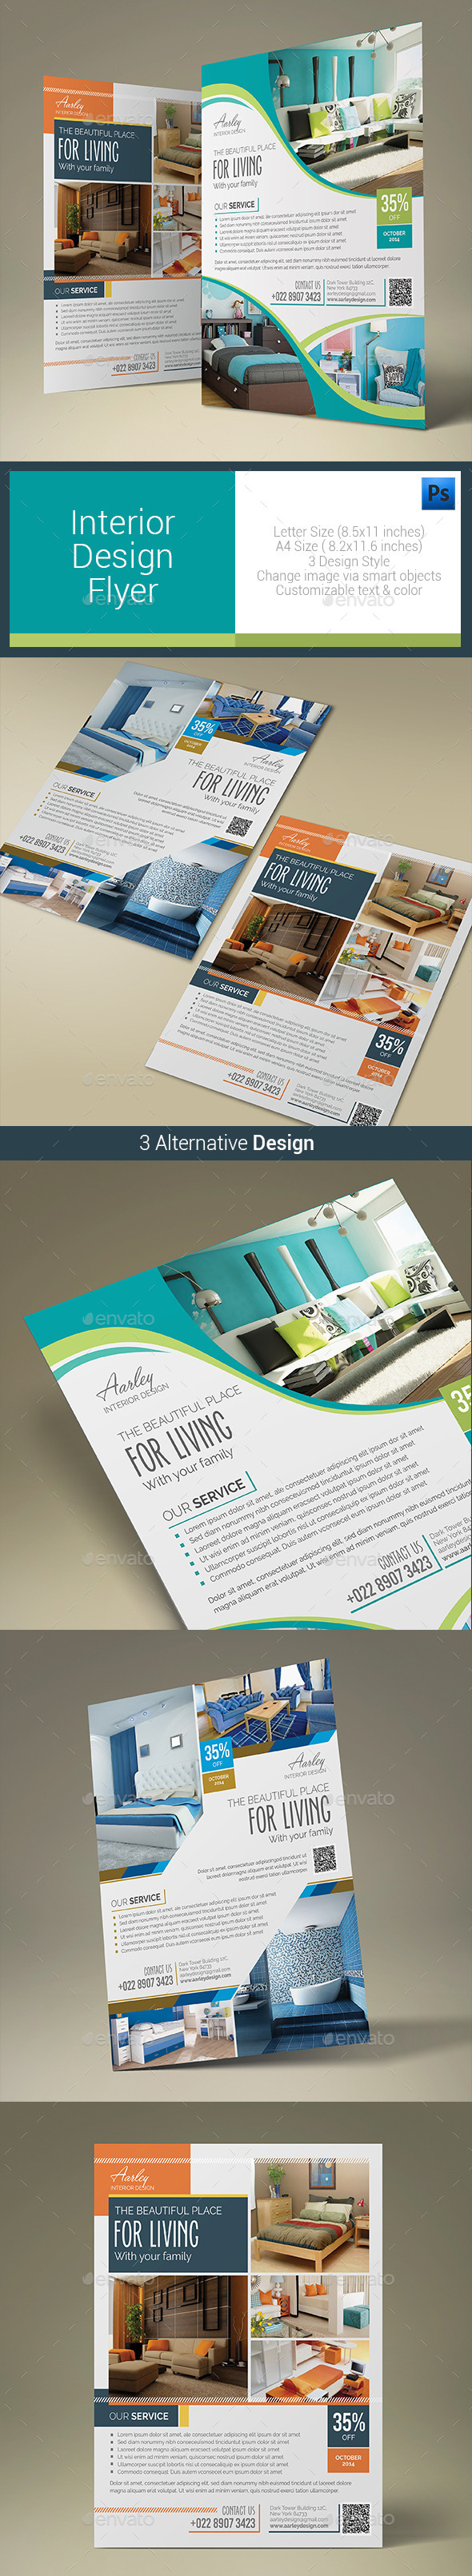 Interior Design Flyer - Corporate Flyers